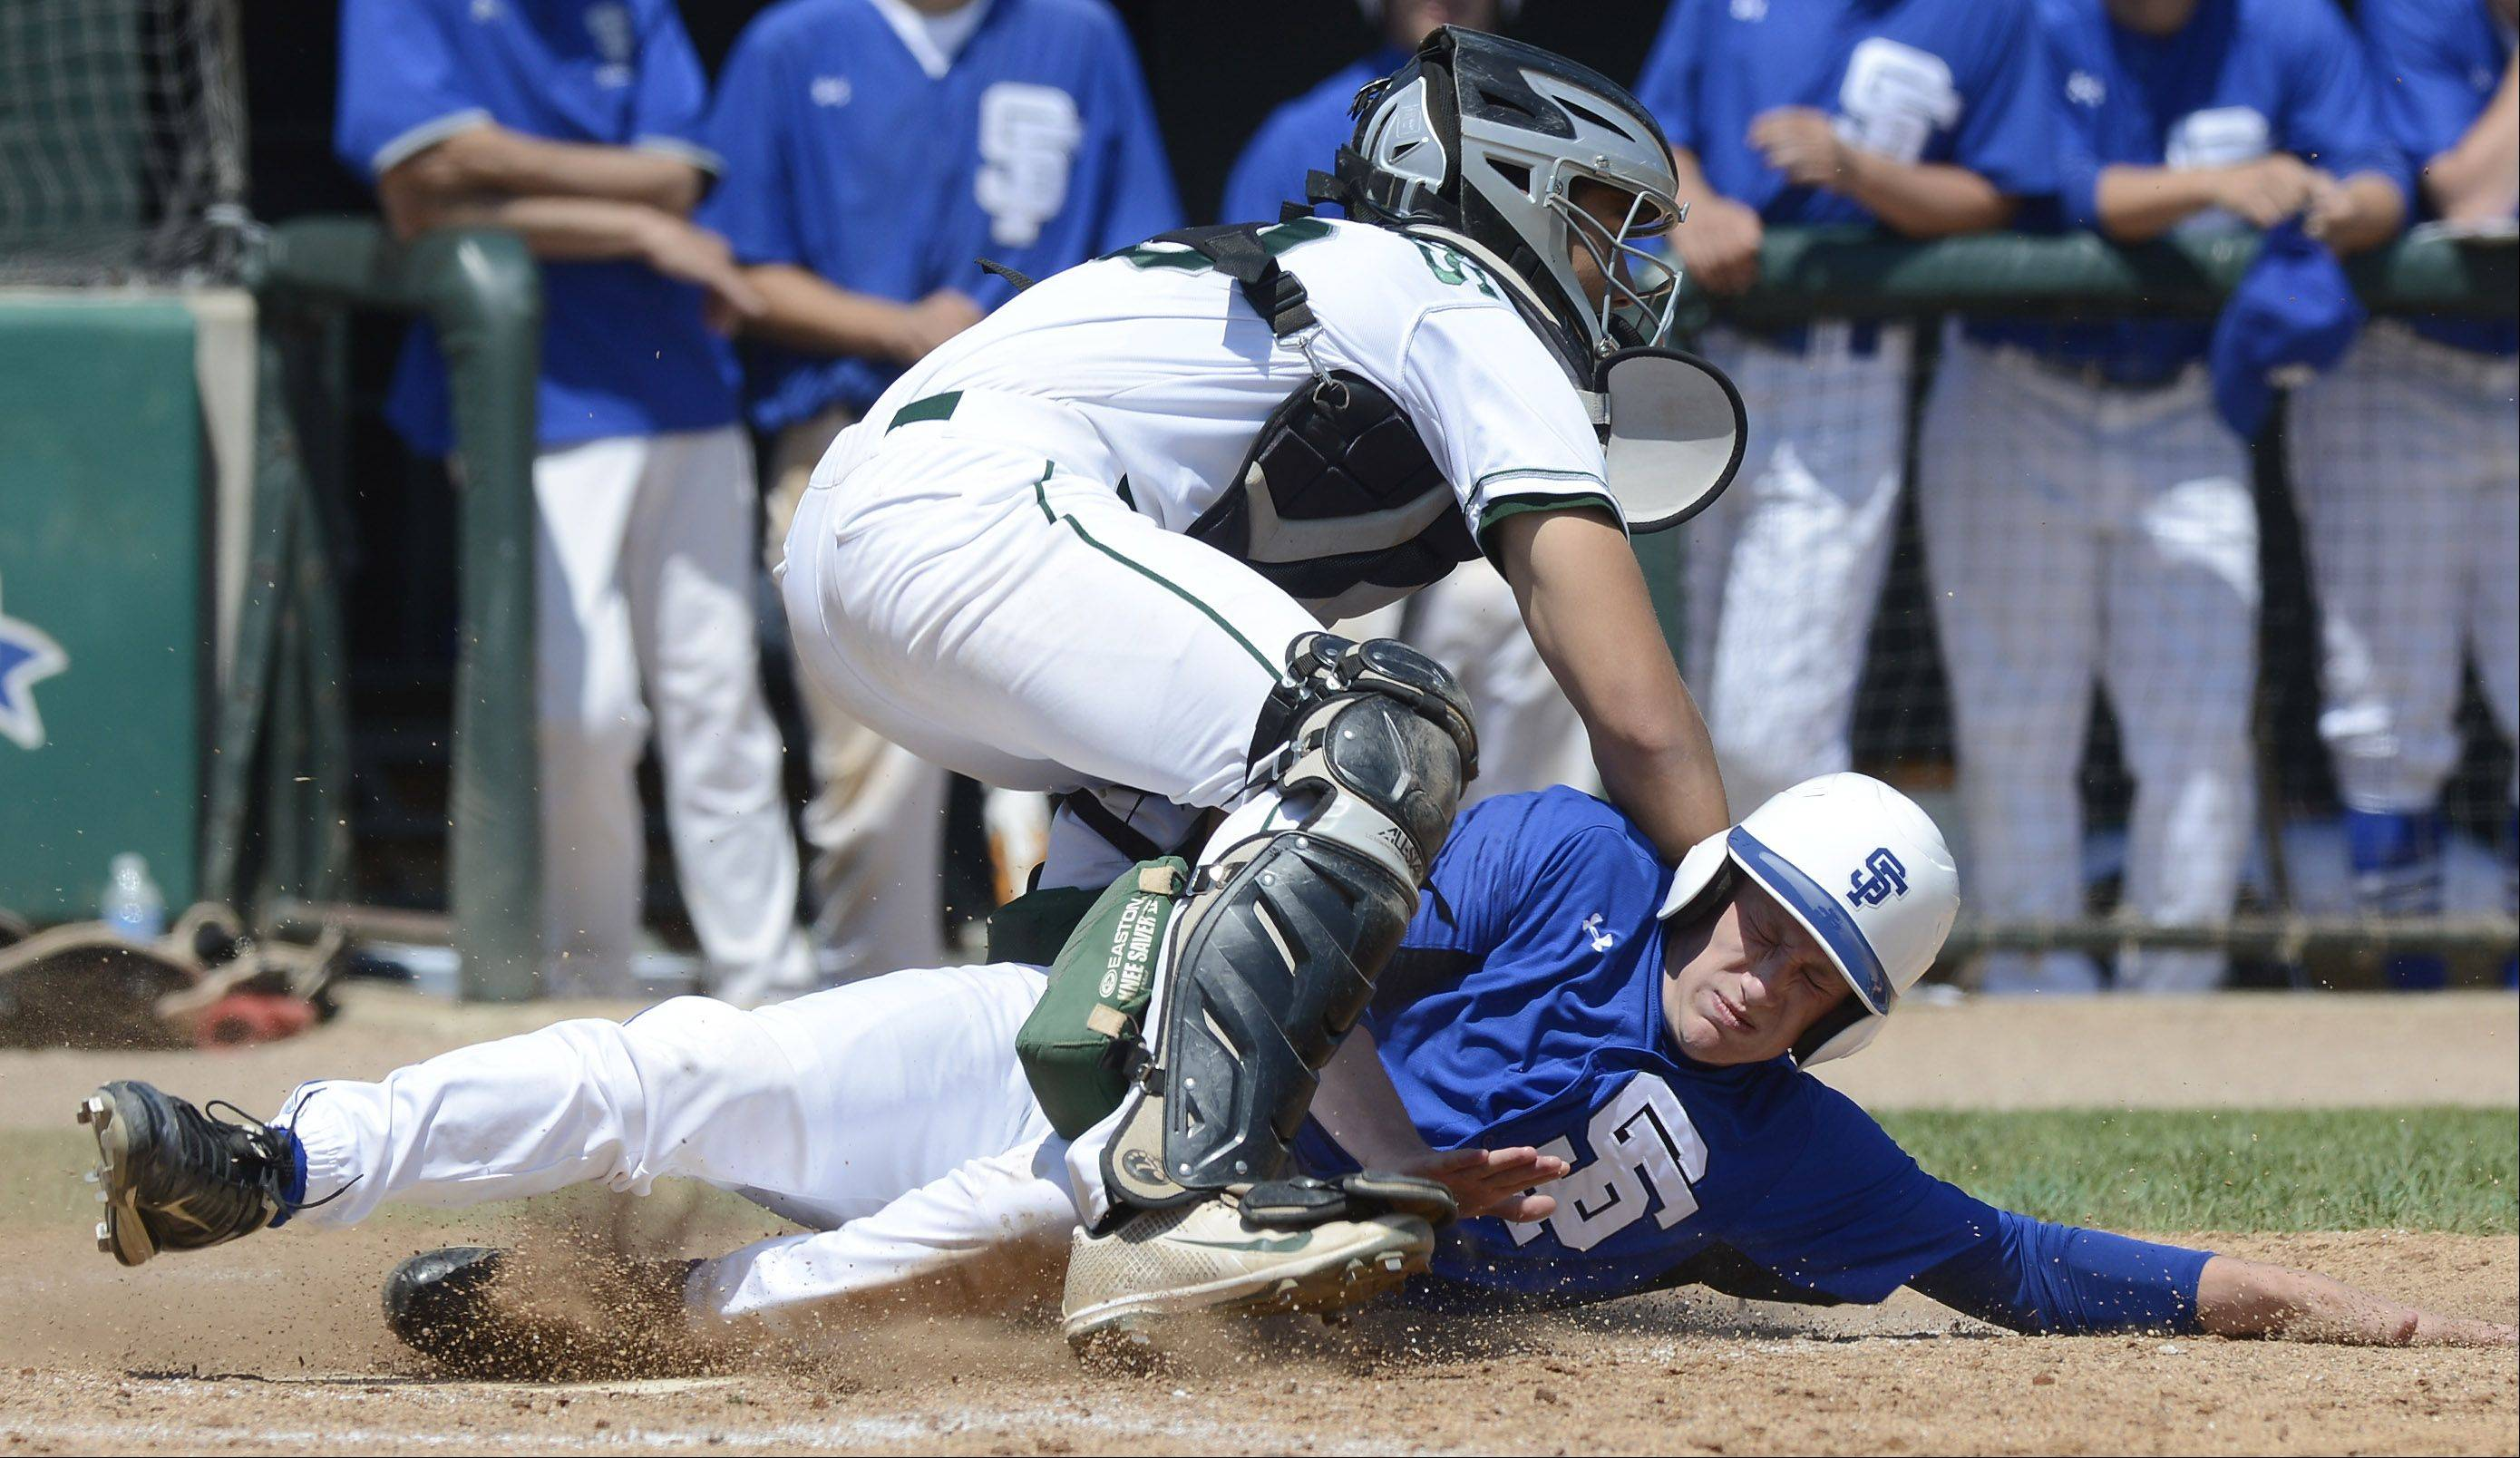 Jake Radel of St. Francis gets tagged out at the plate by Grayslake Central catcher Freddie Landers during the Class 3A state baseball semifinal at Silver Cross Field in Joliet Friday.